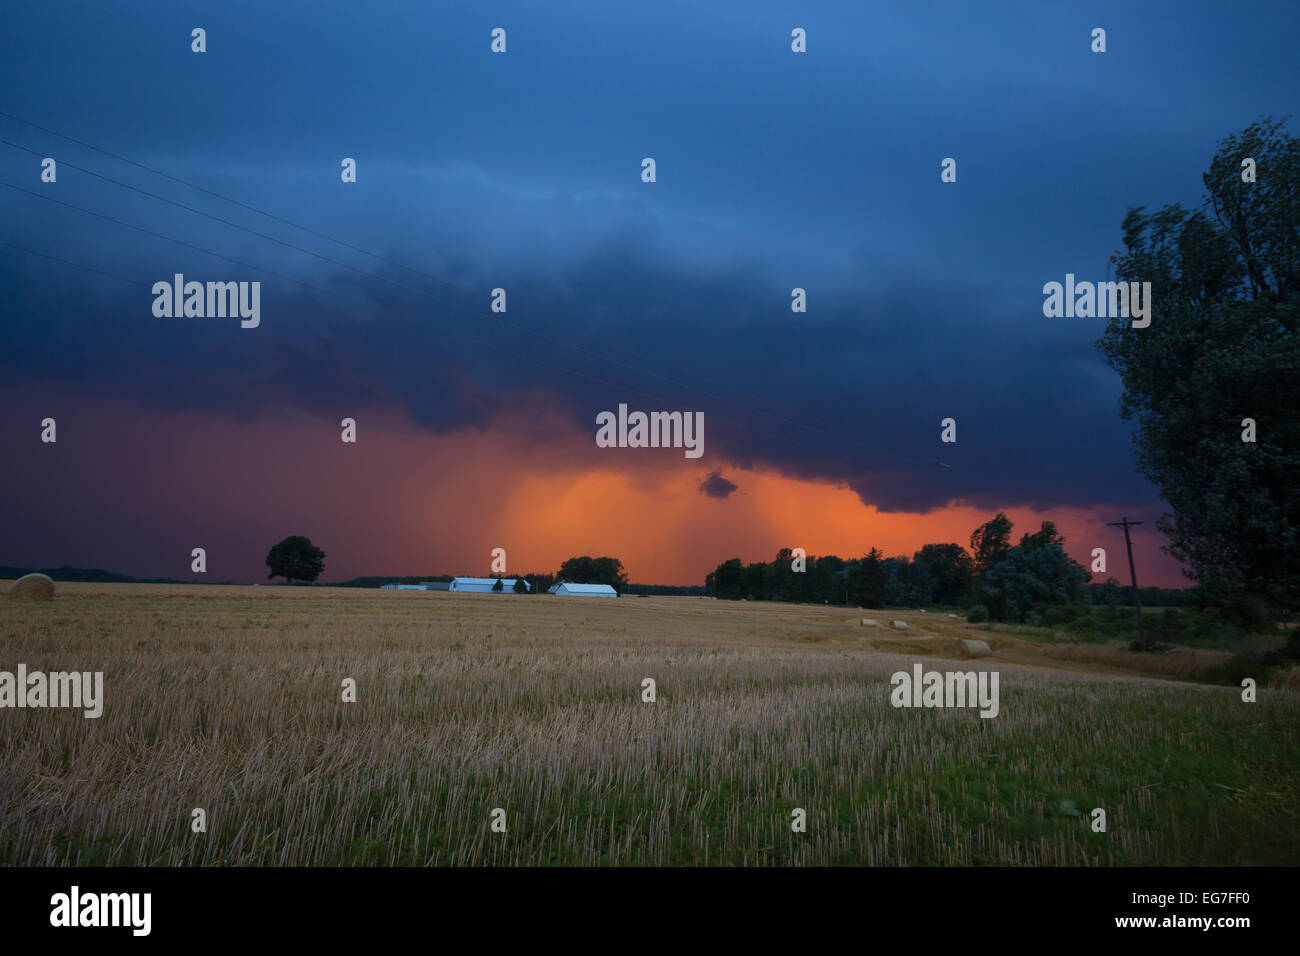 An evening thunderstorm squall line and shelf cloud are backlit by the setting evening sun producing vibrant orange - Stock Image